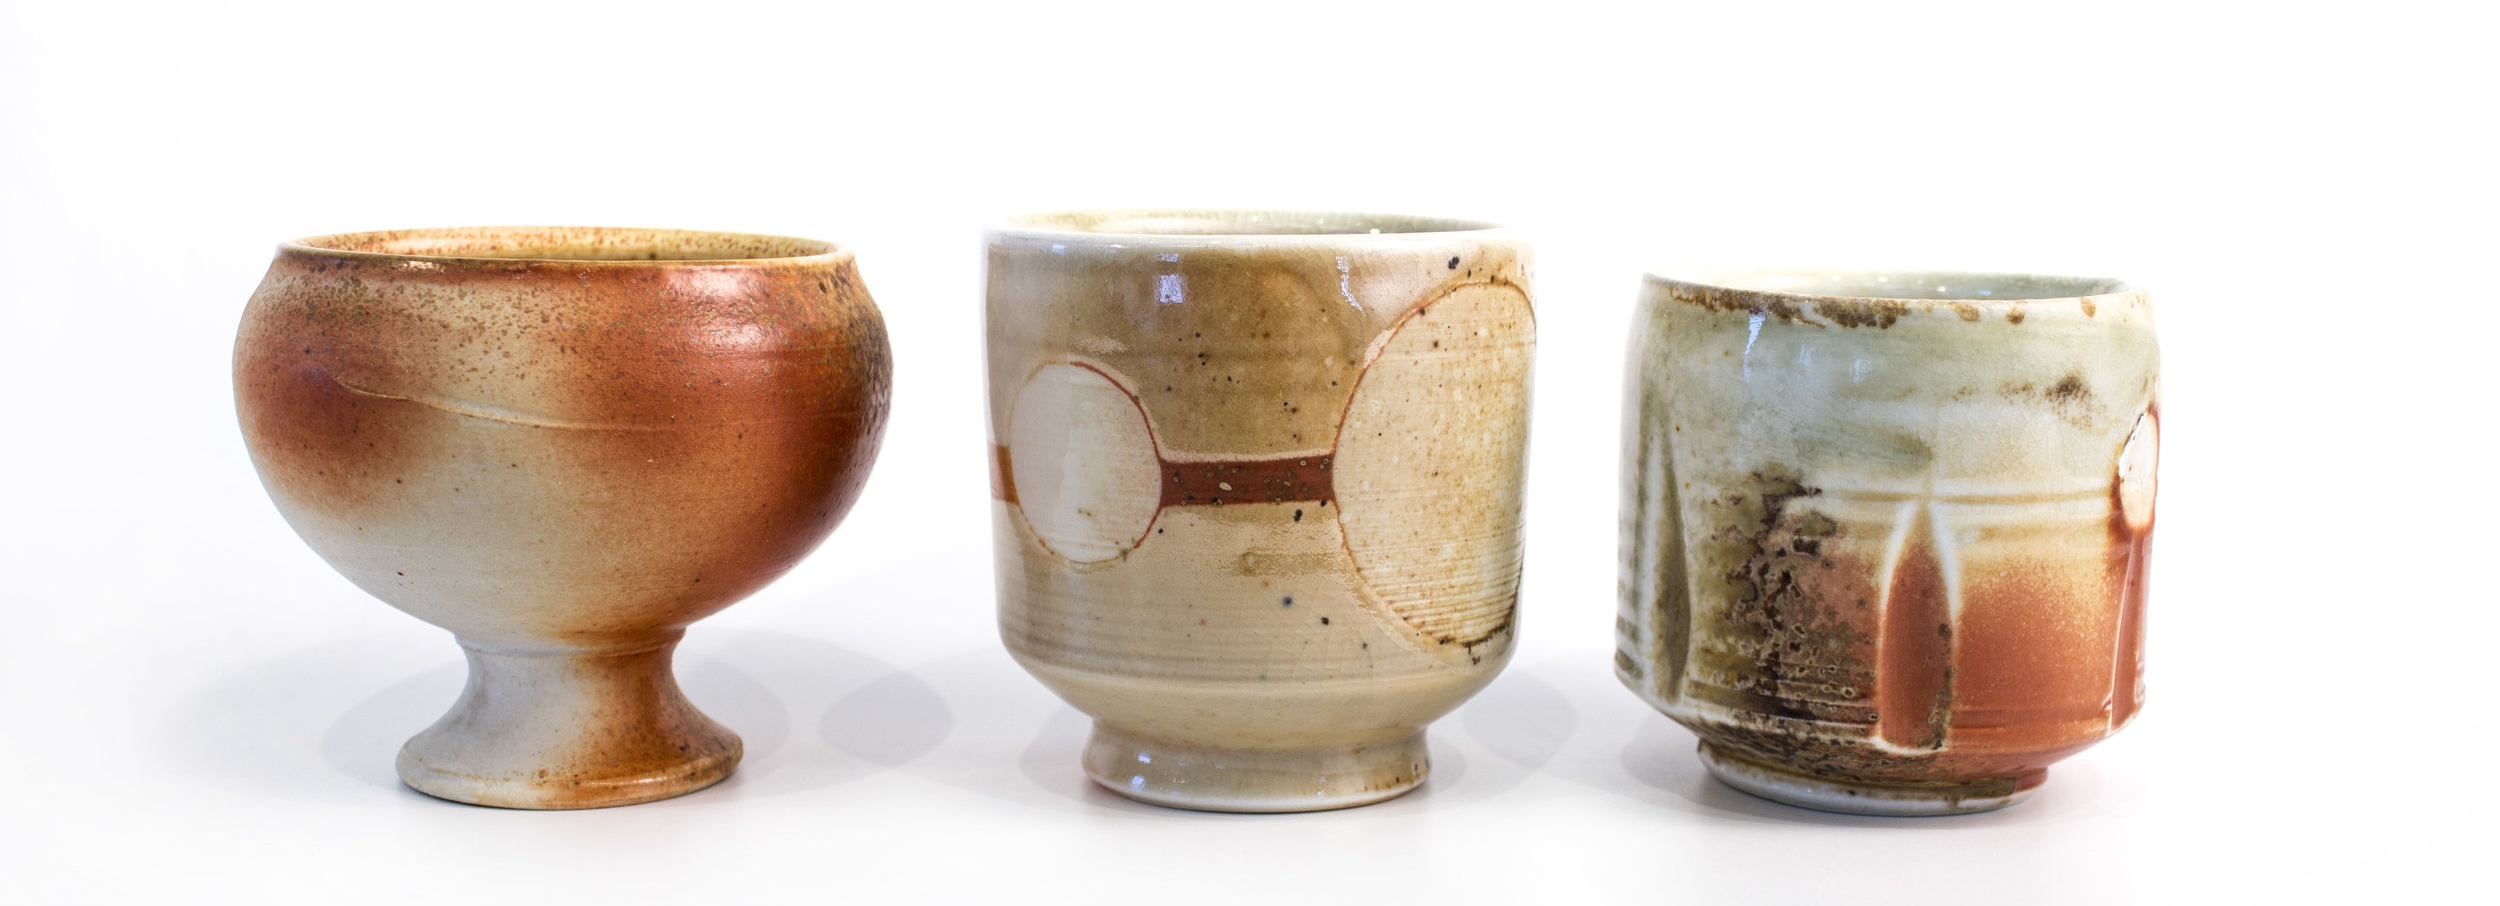 Brian Buckland - wood-fired cups